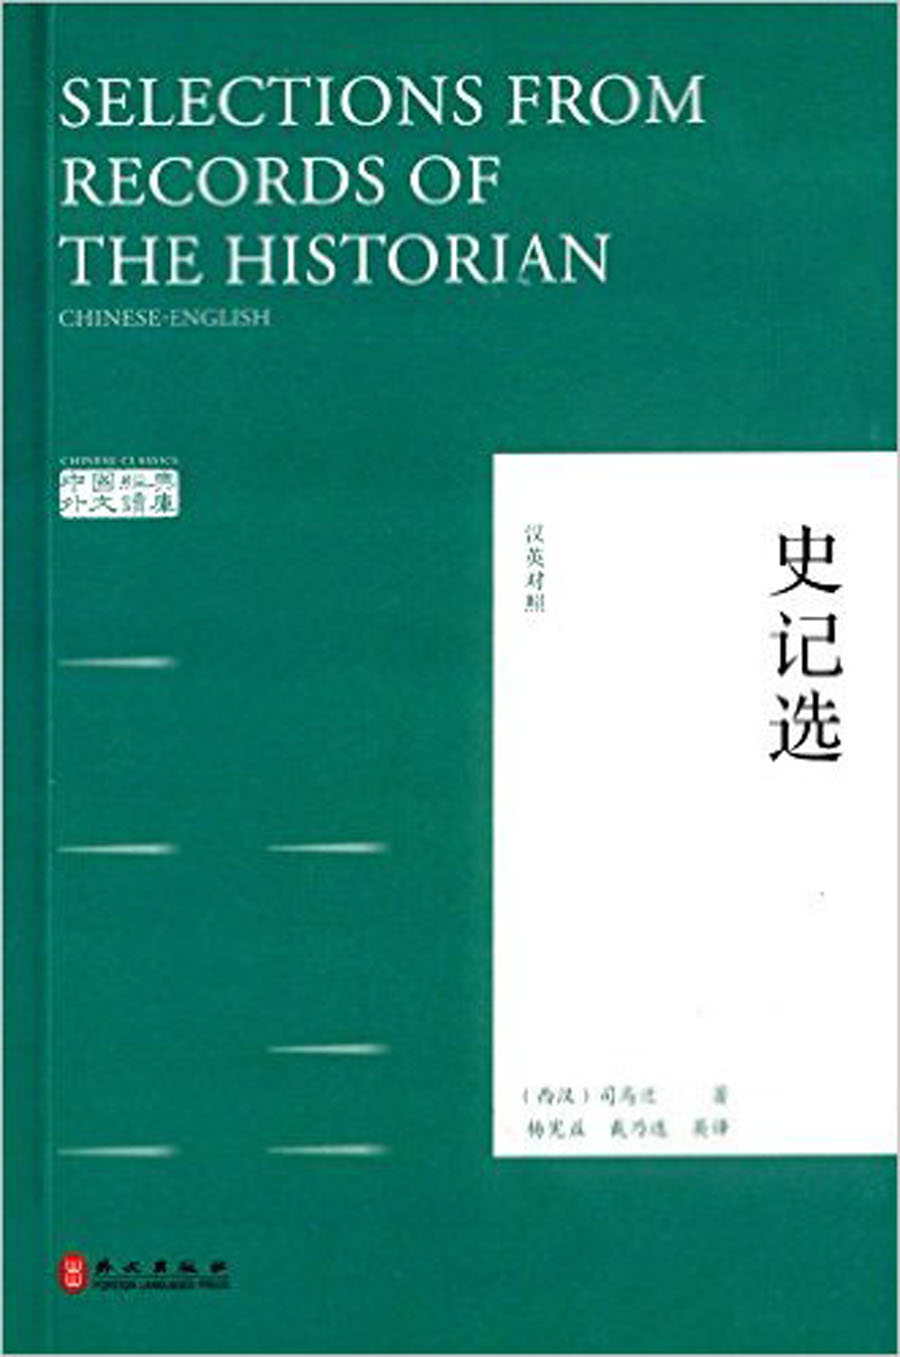 Chinese classics: Selections from Records of the Historian (Chinese-English)- bilingual